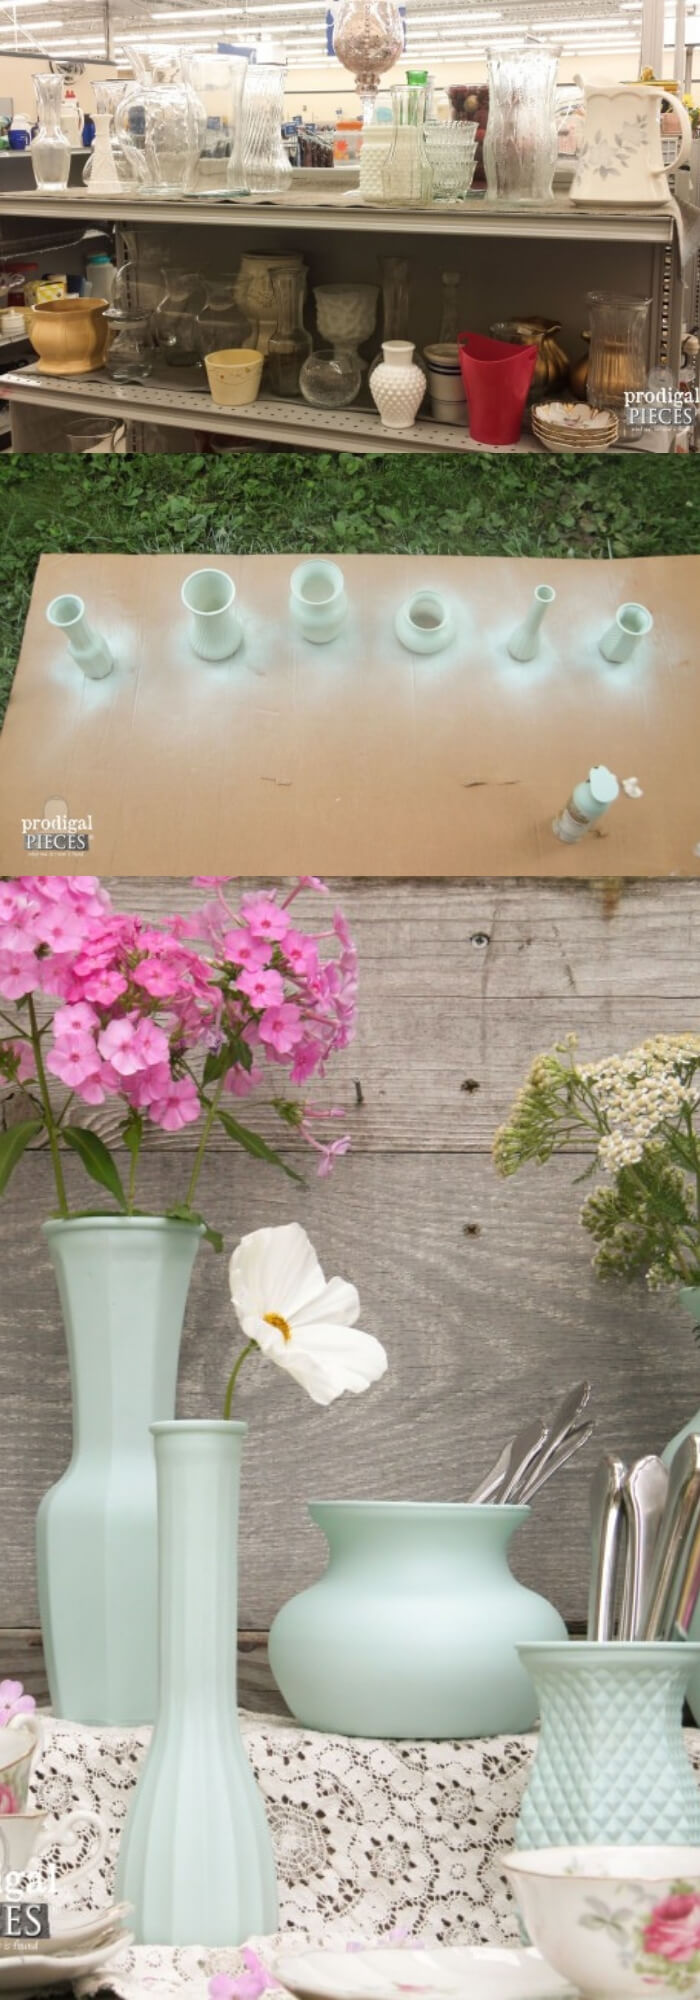 Thrifted Glass DIY Vignette | Spring Spruce-Up - Quick, Cheap Home Décor Ideas | FarmFoodFamily.com